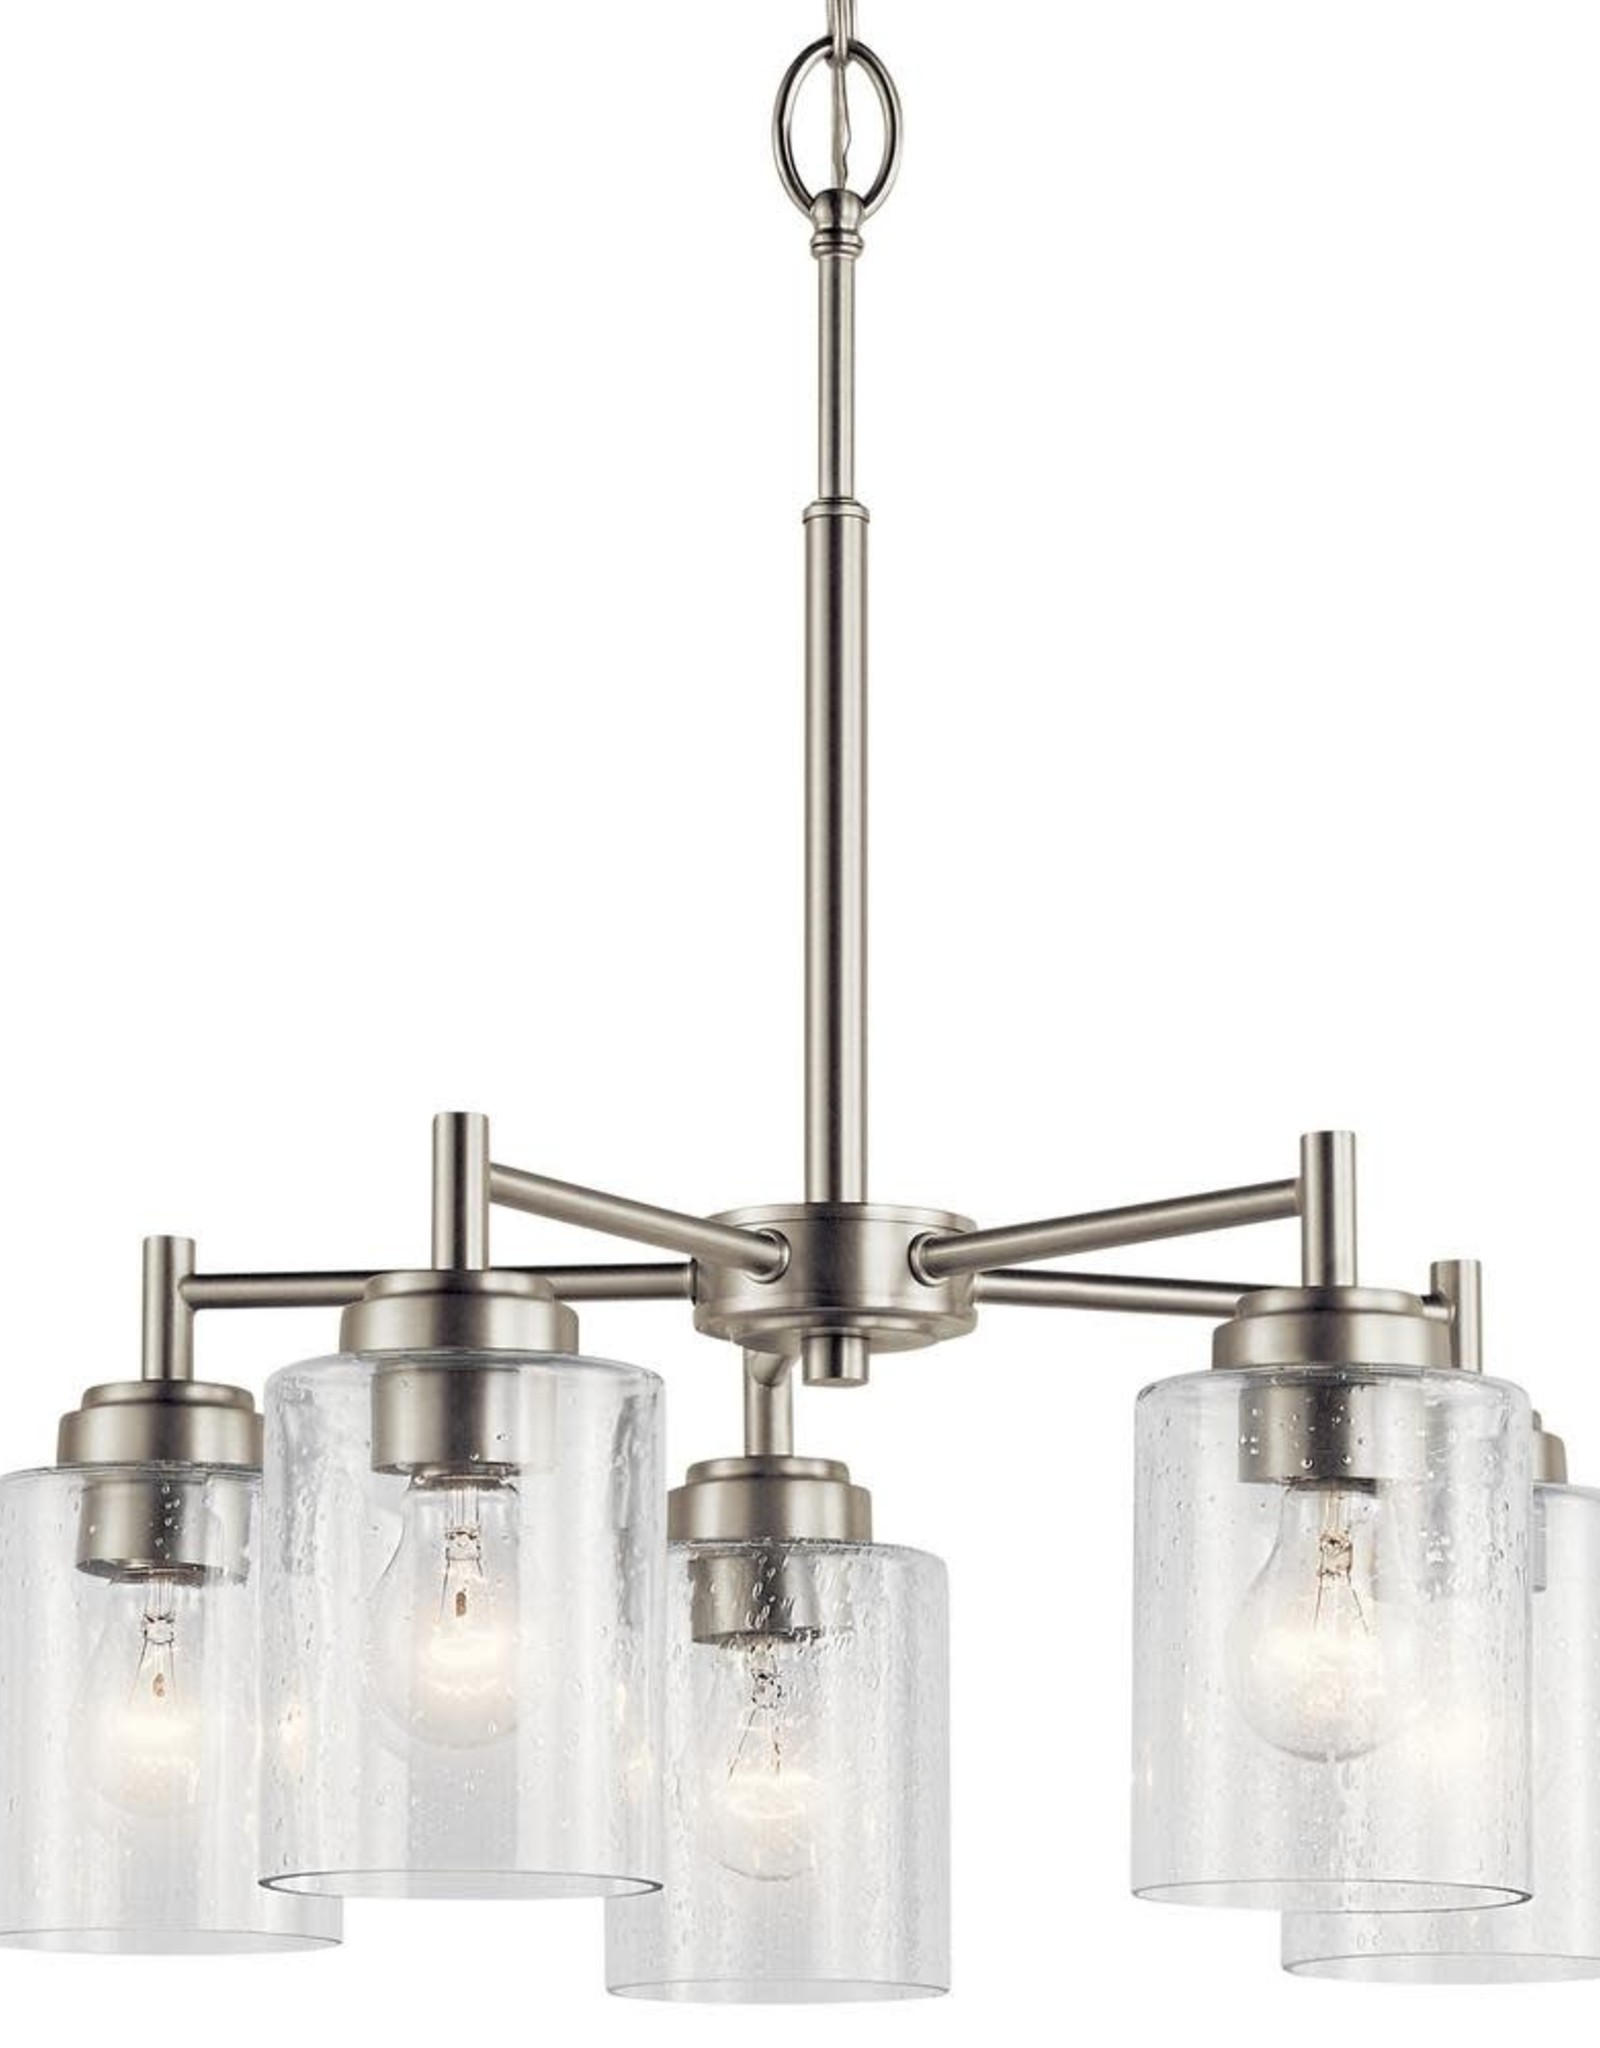 Kichler Winslow 5-Light Brushed Nickel Chandelier with Clear Seeded Glass Shade